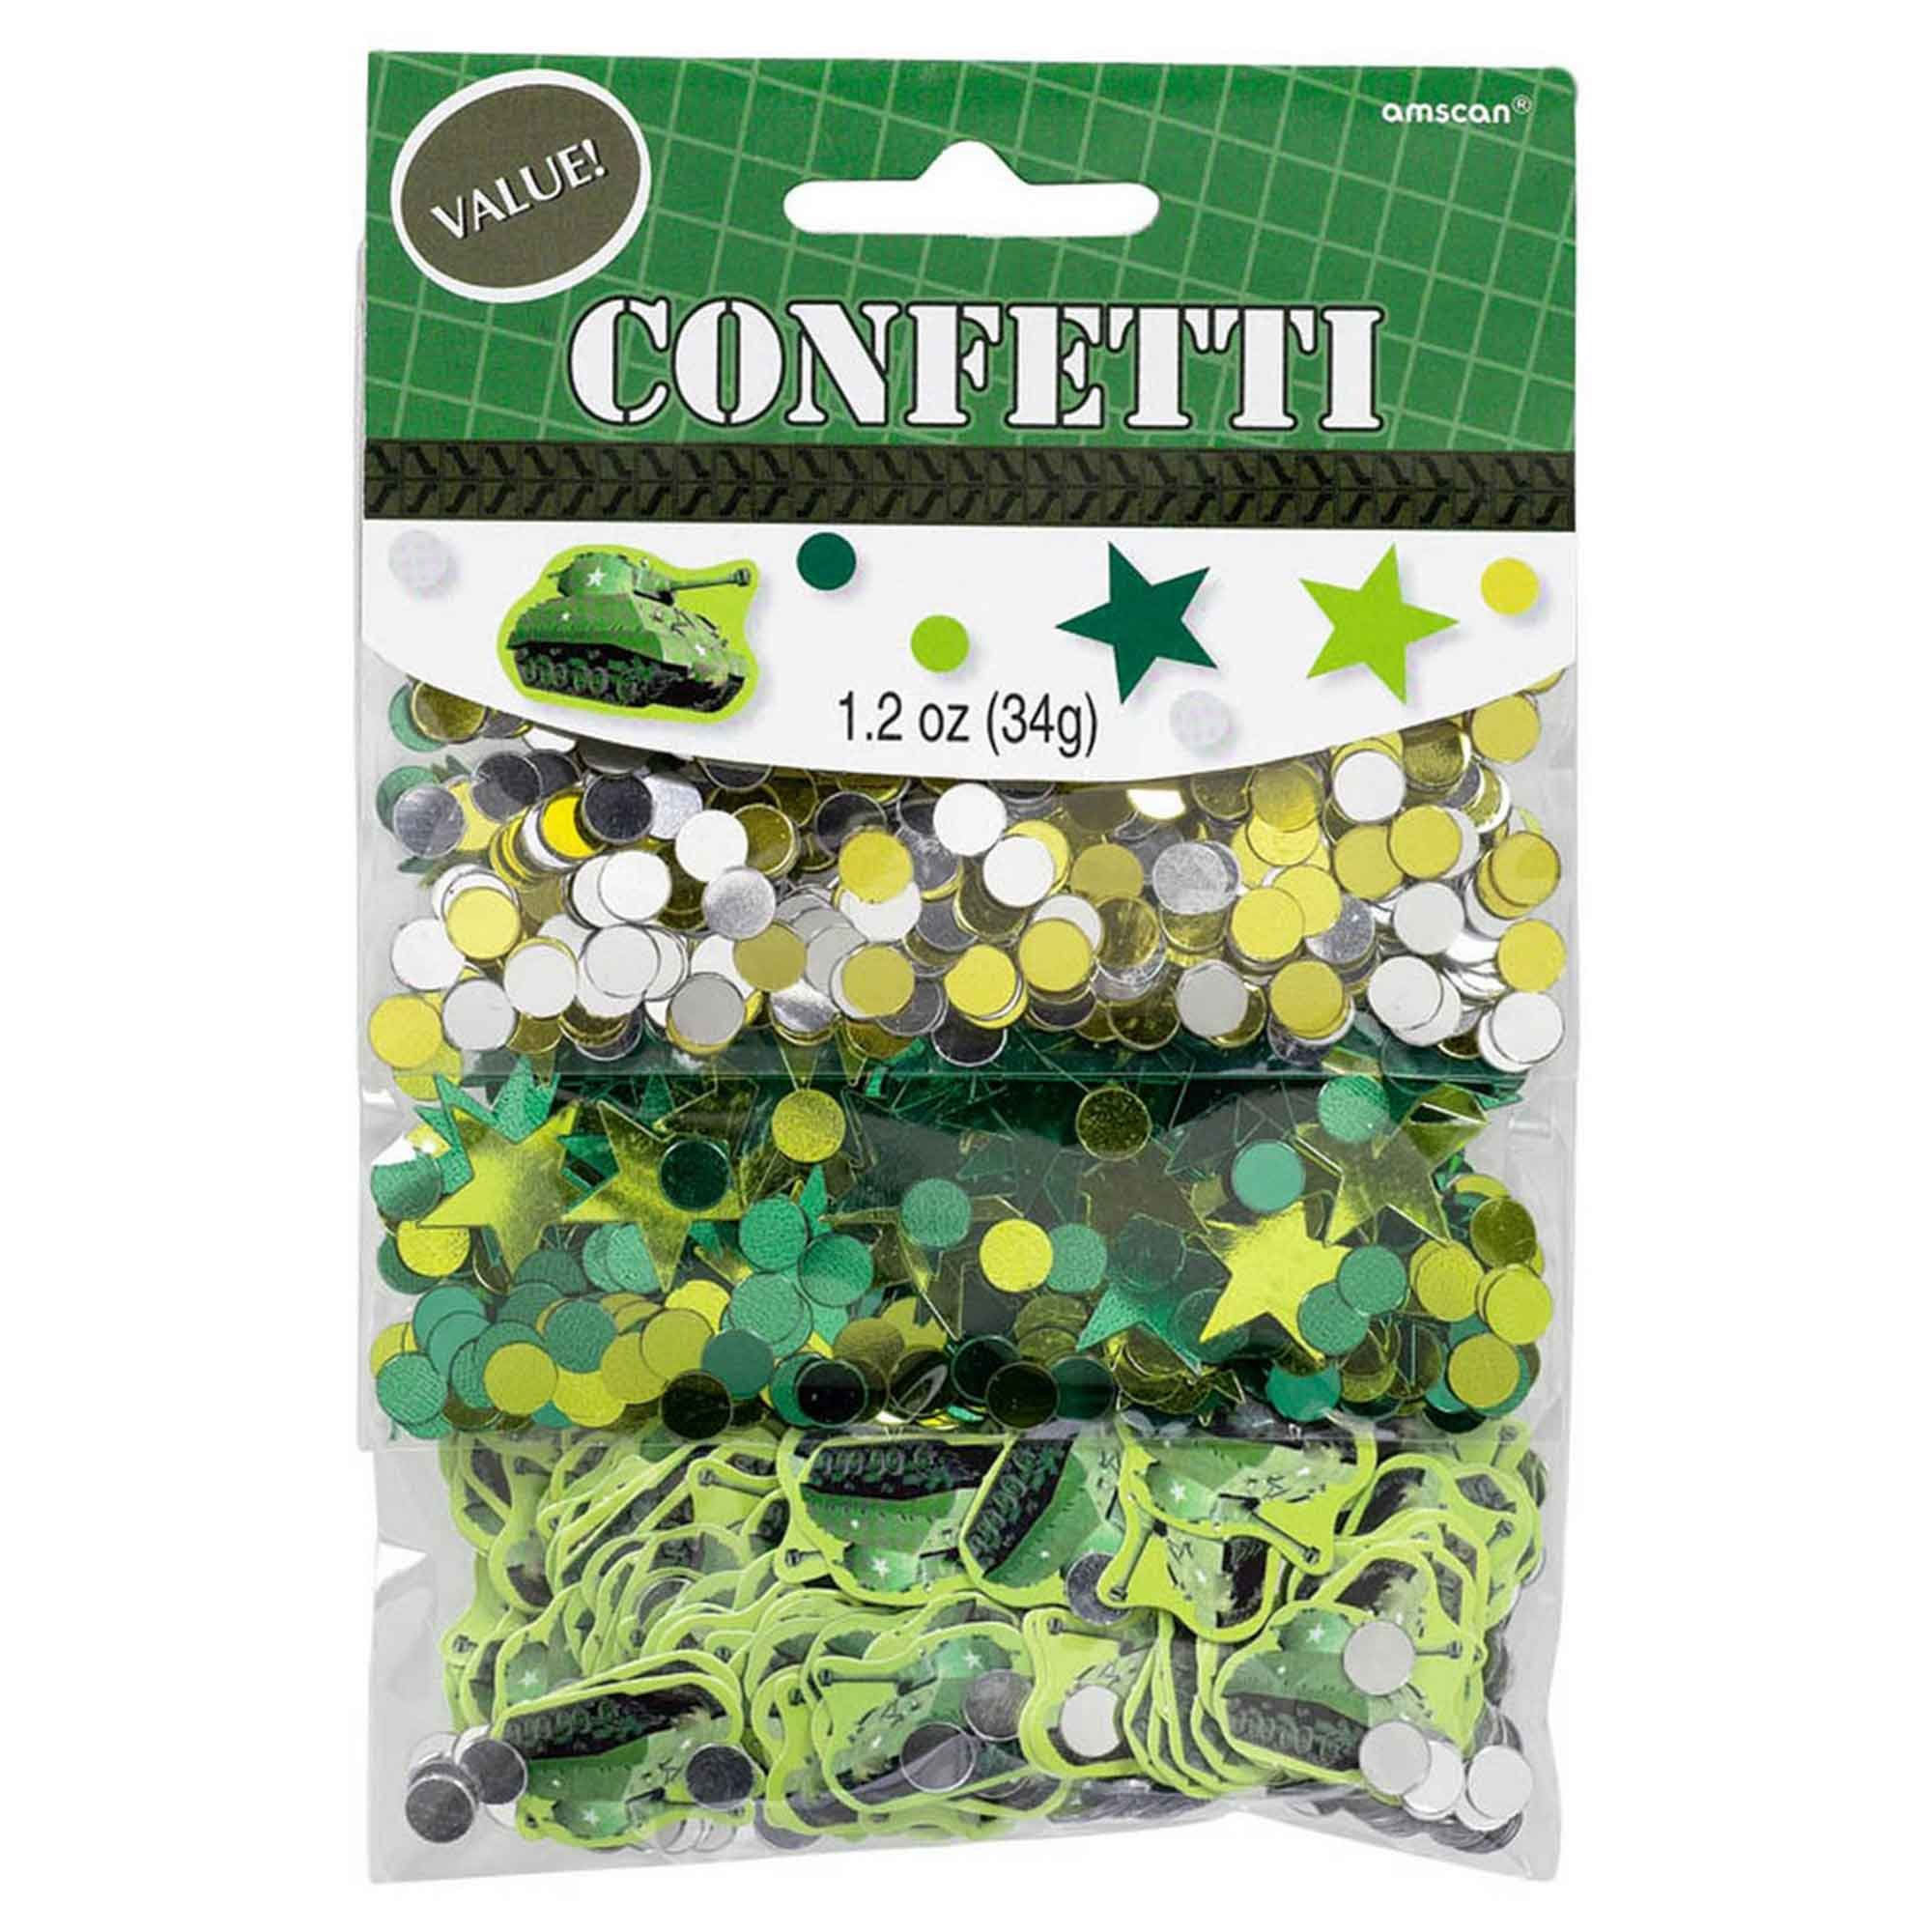 Camouflage Value Confetti 34g